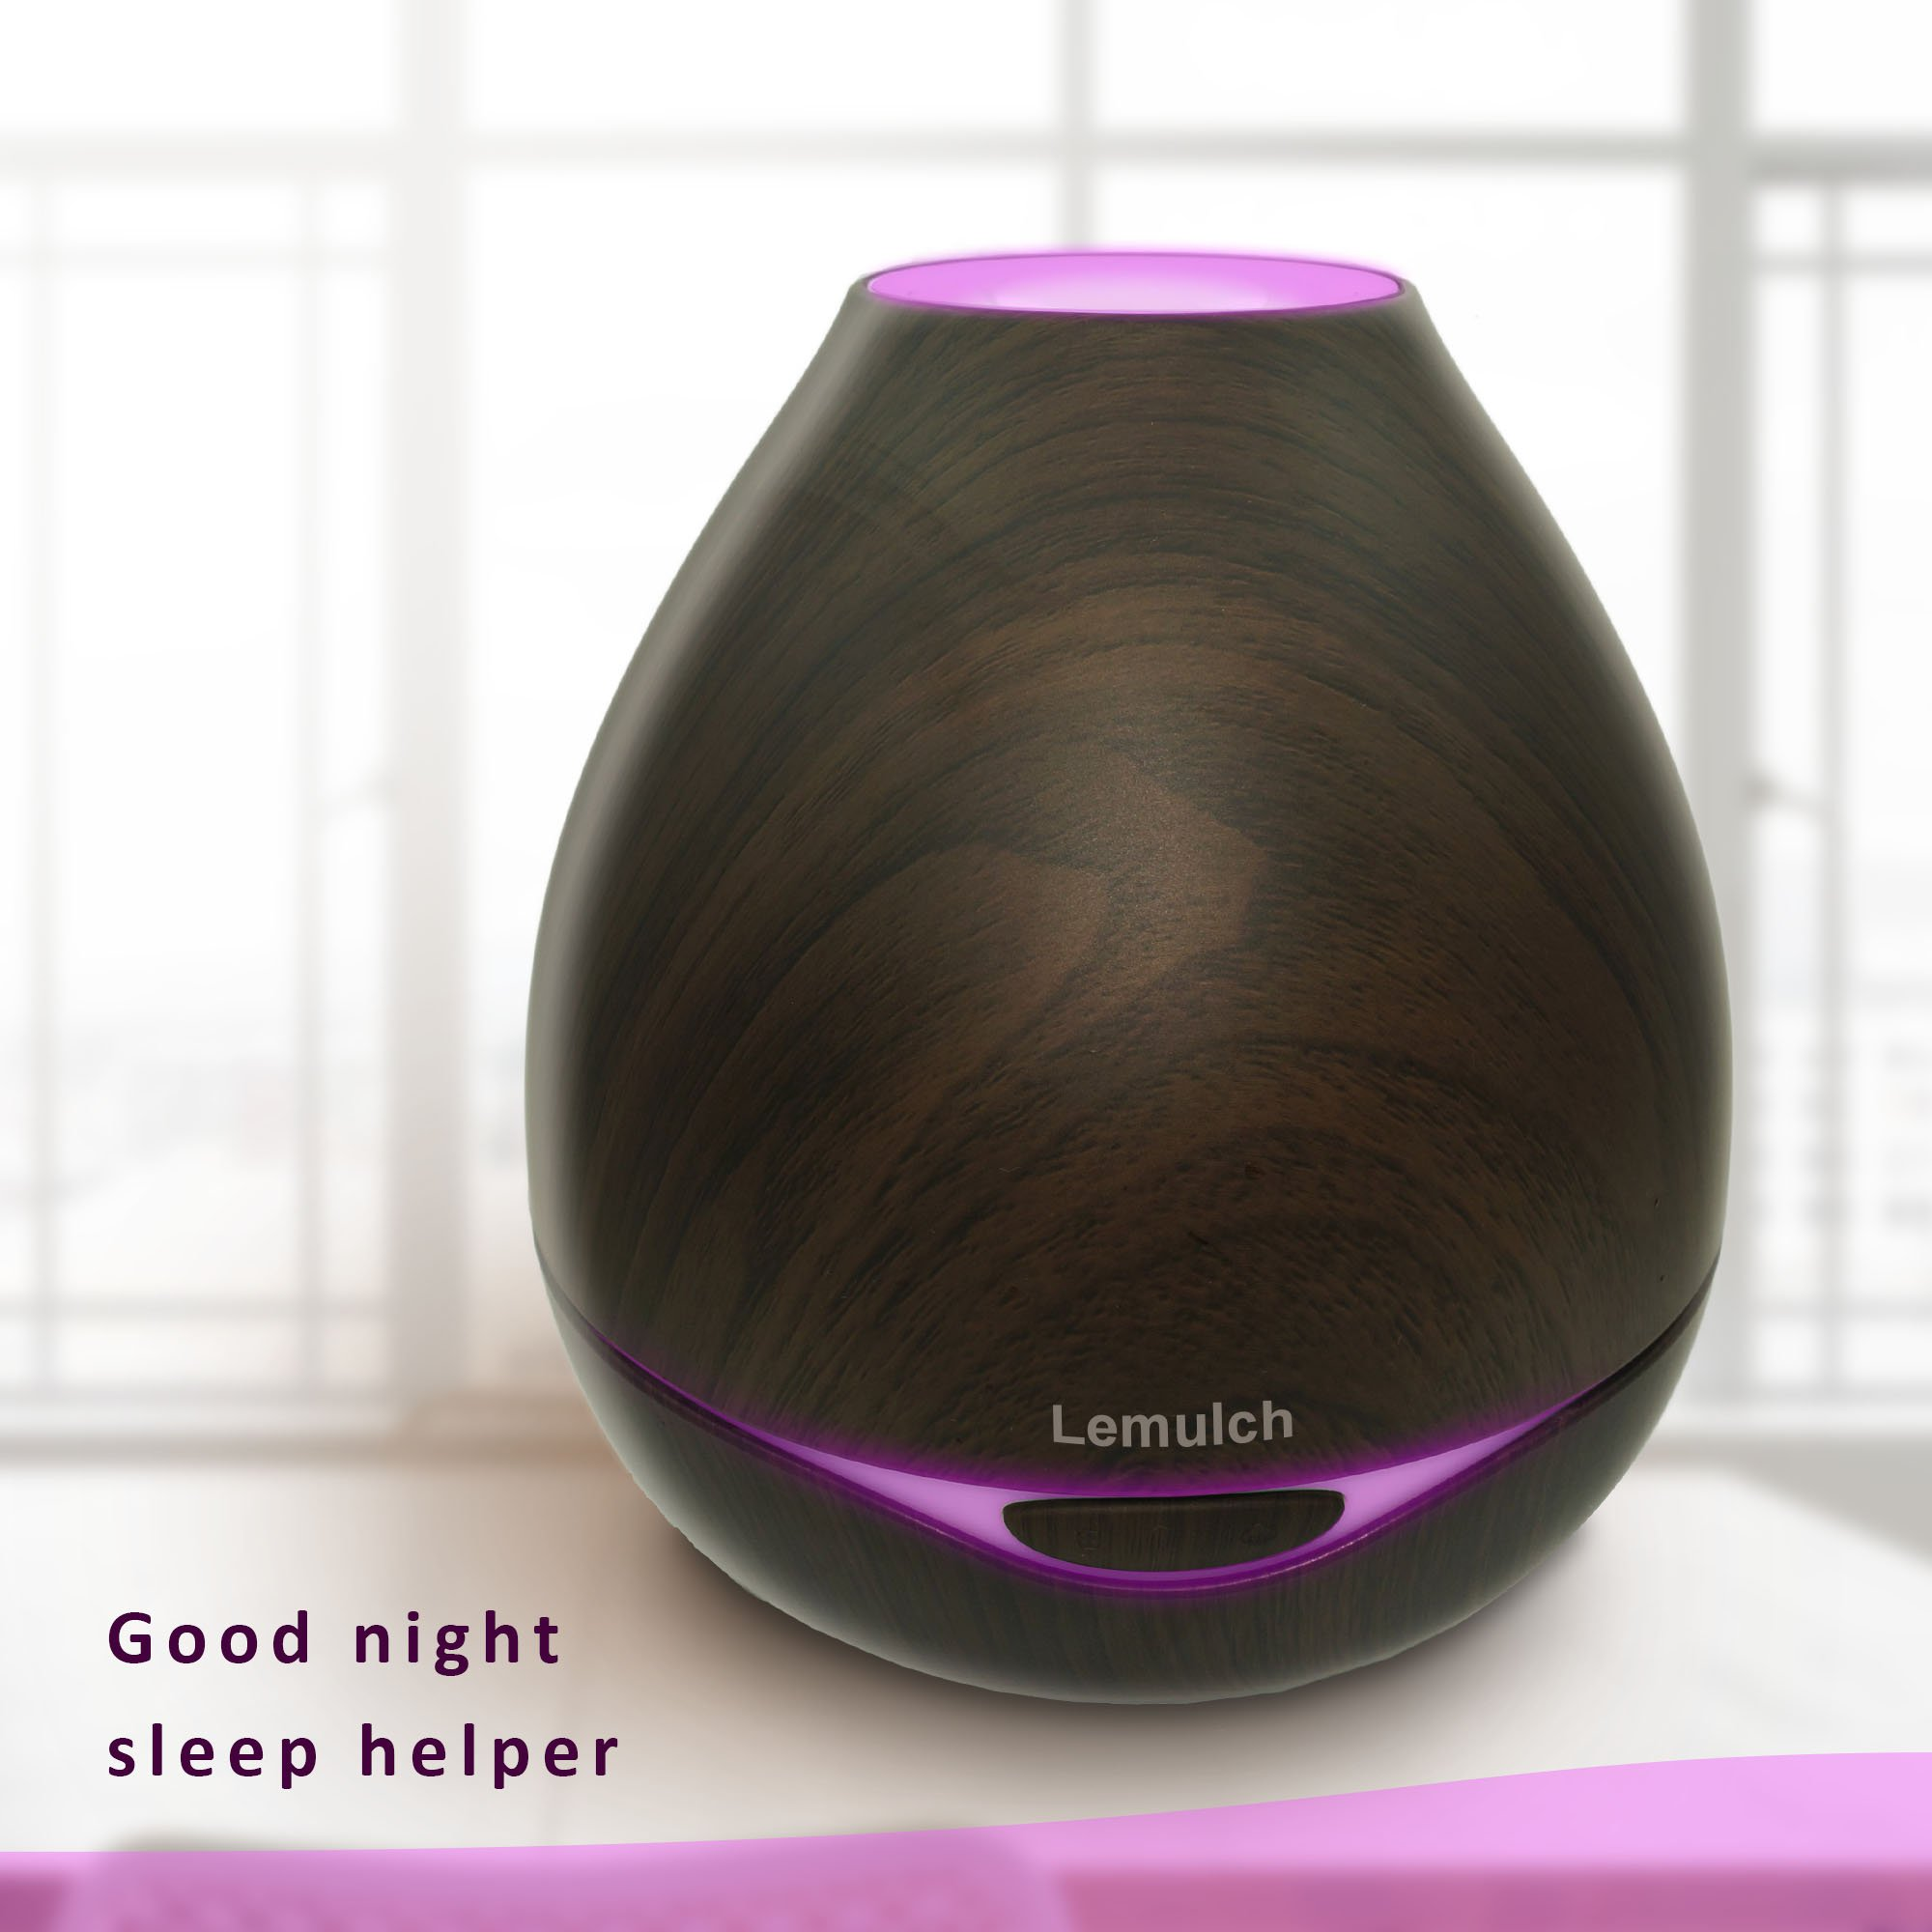 Lemulch Wood Grain 300ml Aromatherapy Diffusers&Cool Mist Humidifier for Dorm Baby Home with Adjustable Mist Mode, Lights Changing, Espresso by Lemulch (Image #7)